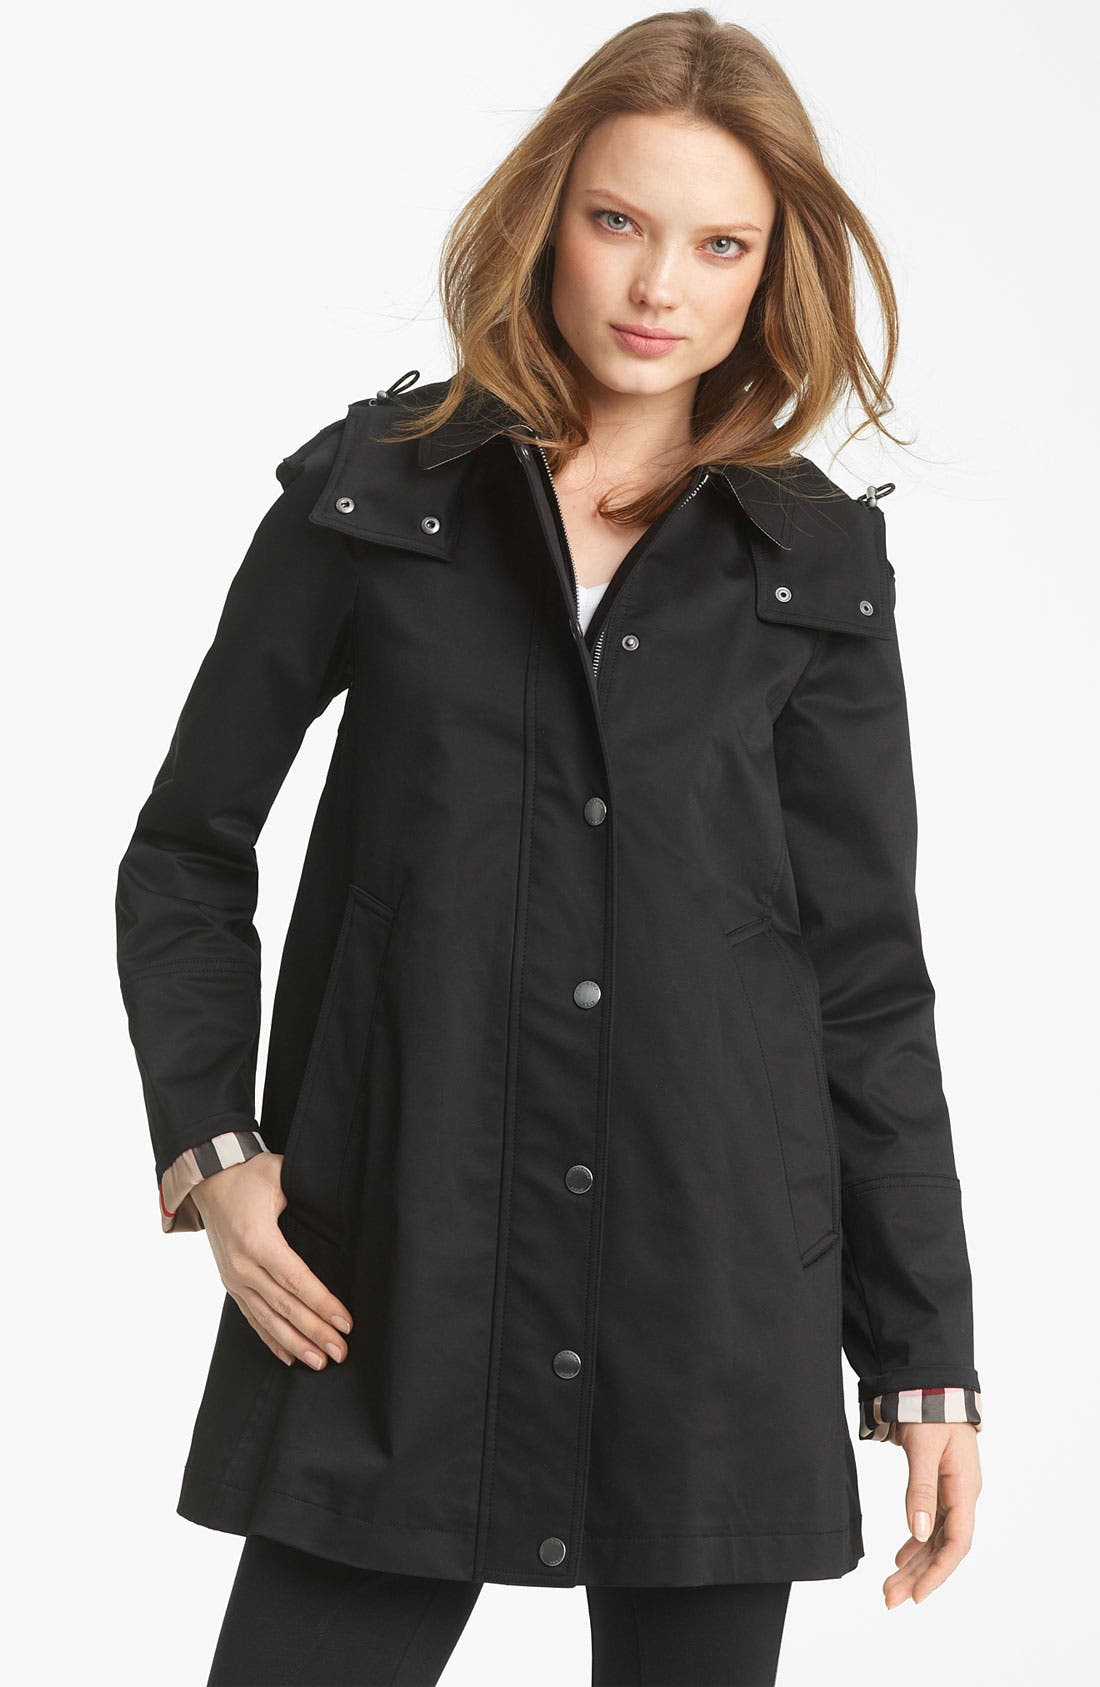 'Bowpark' Raincoat with Liner,                         Main,                         color, Black